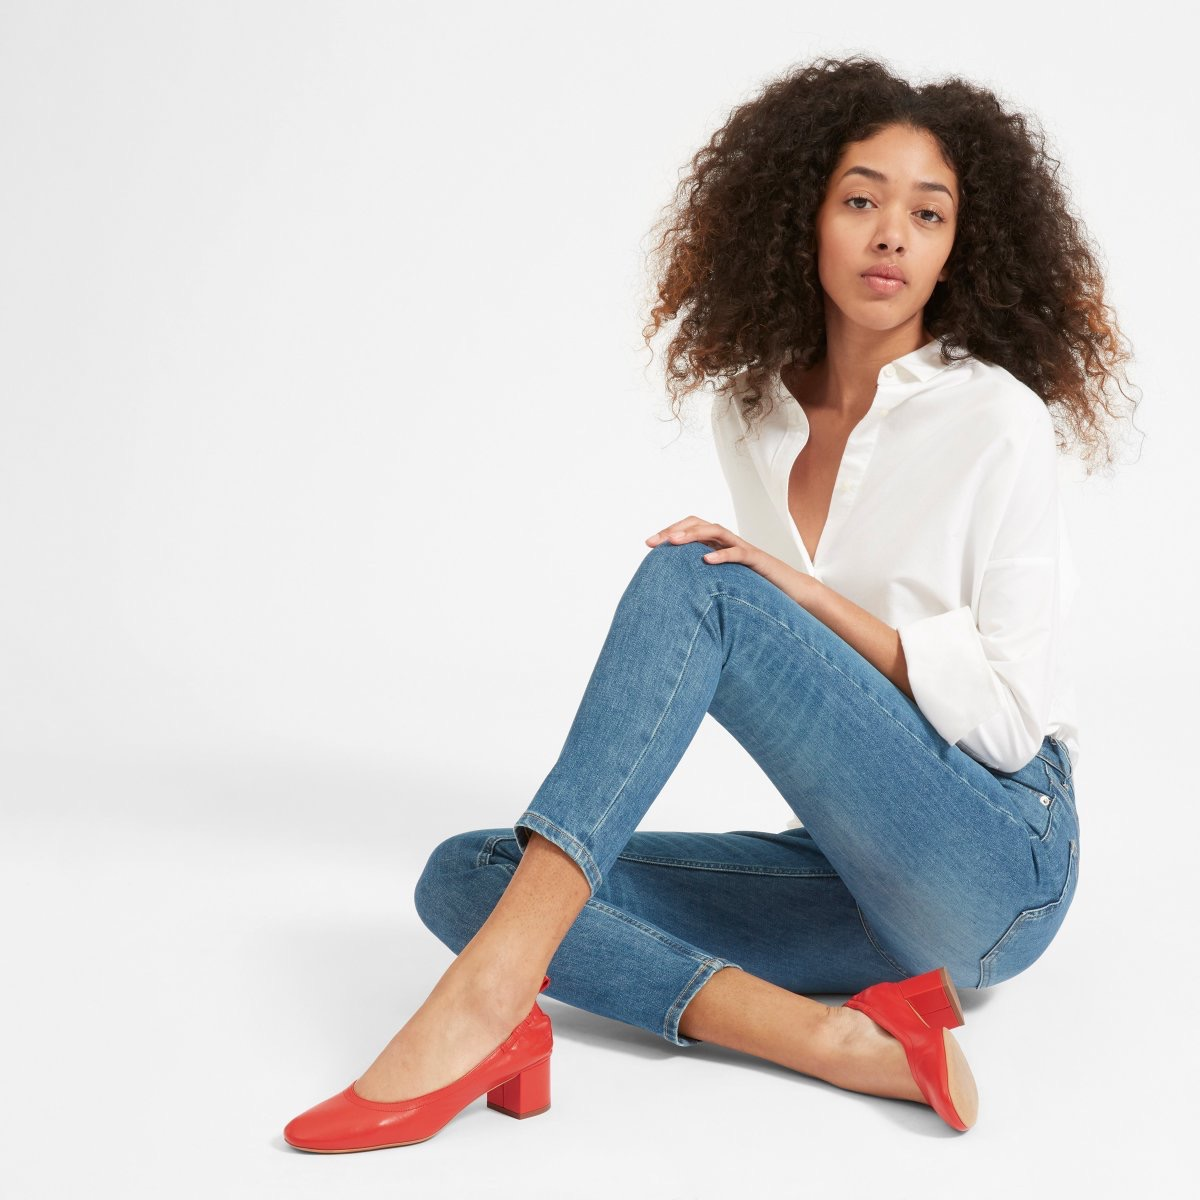 Everlane red heels popular holiday gifts